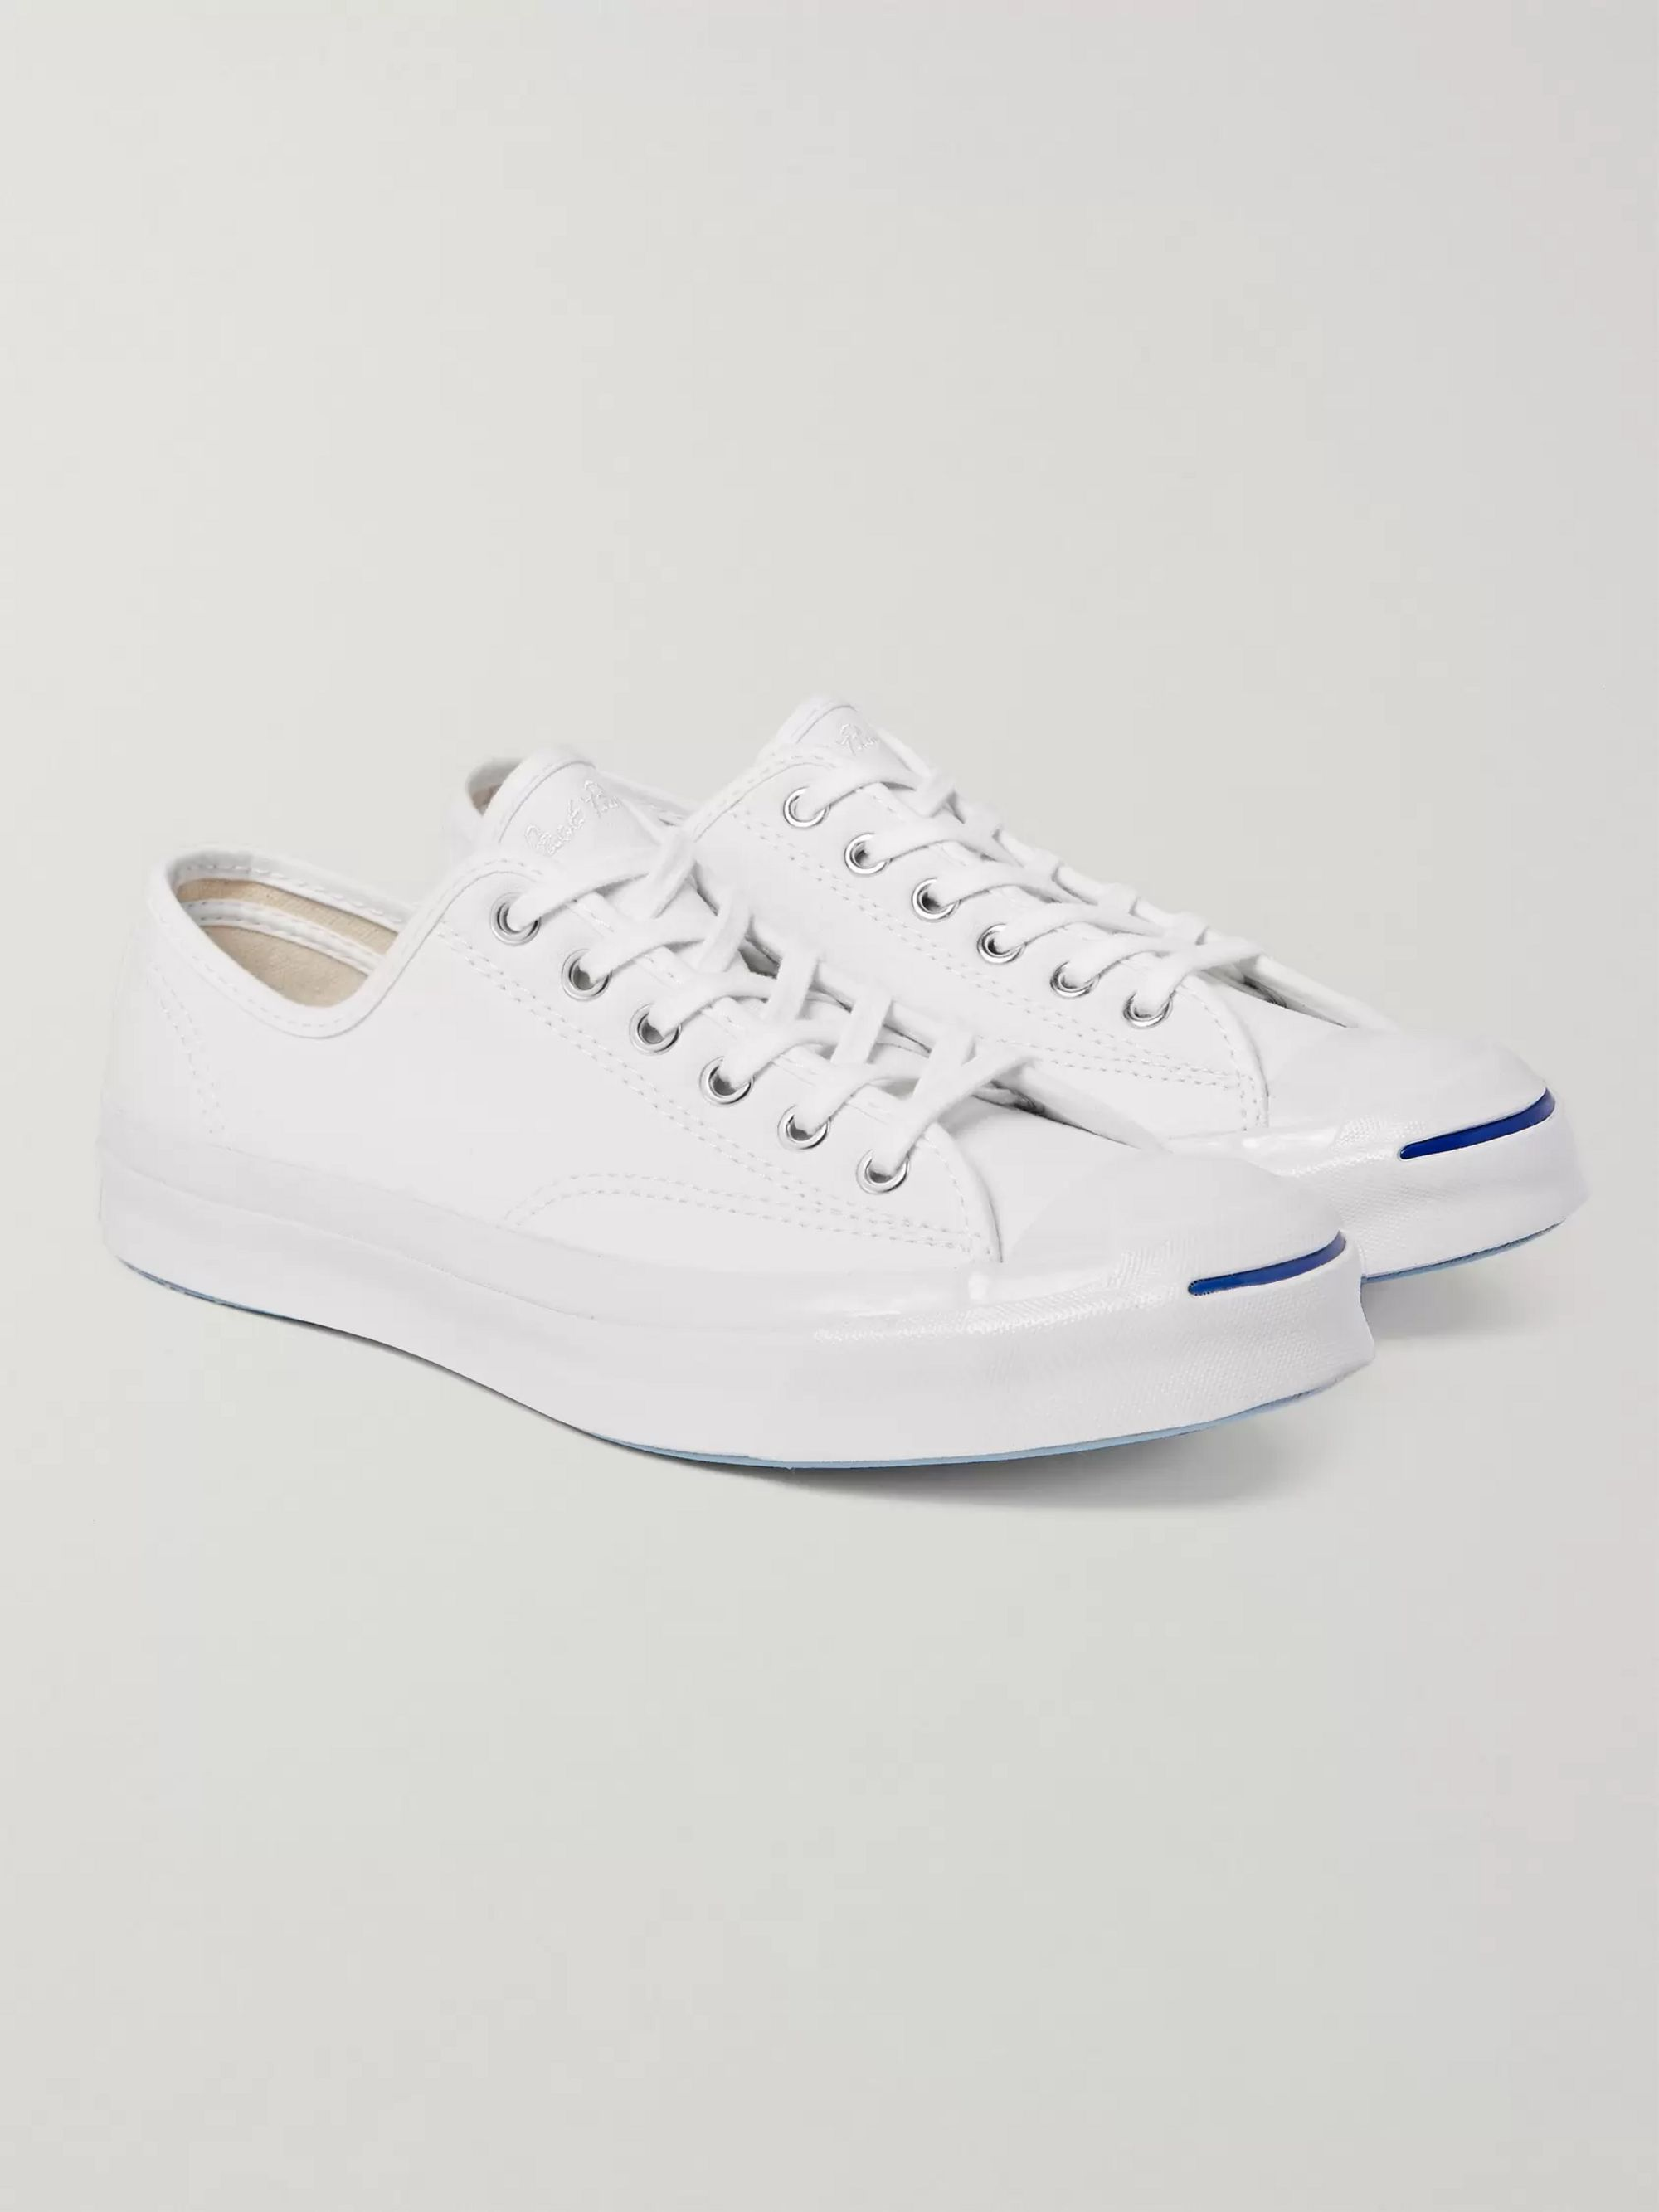 White Jack Purcell Signature Canvas